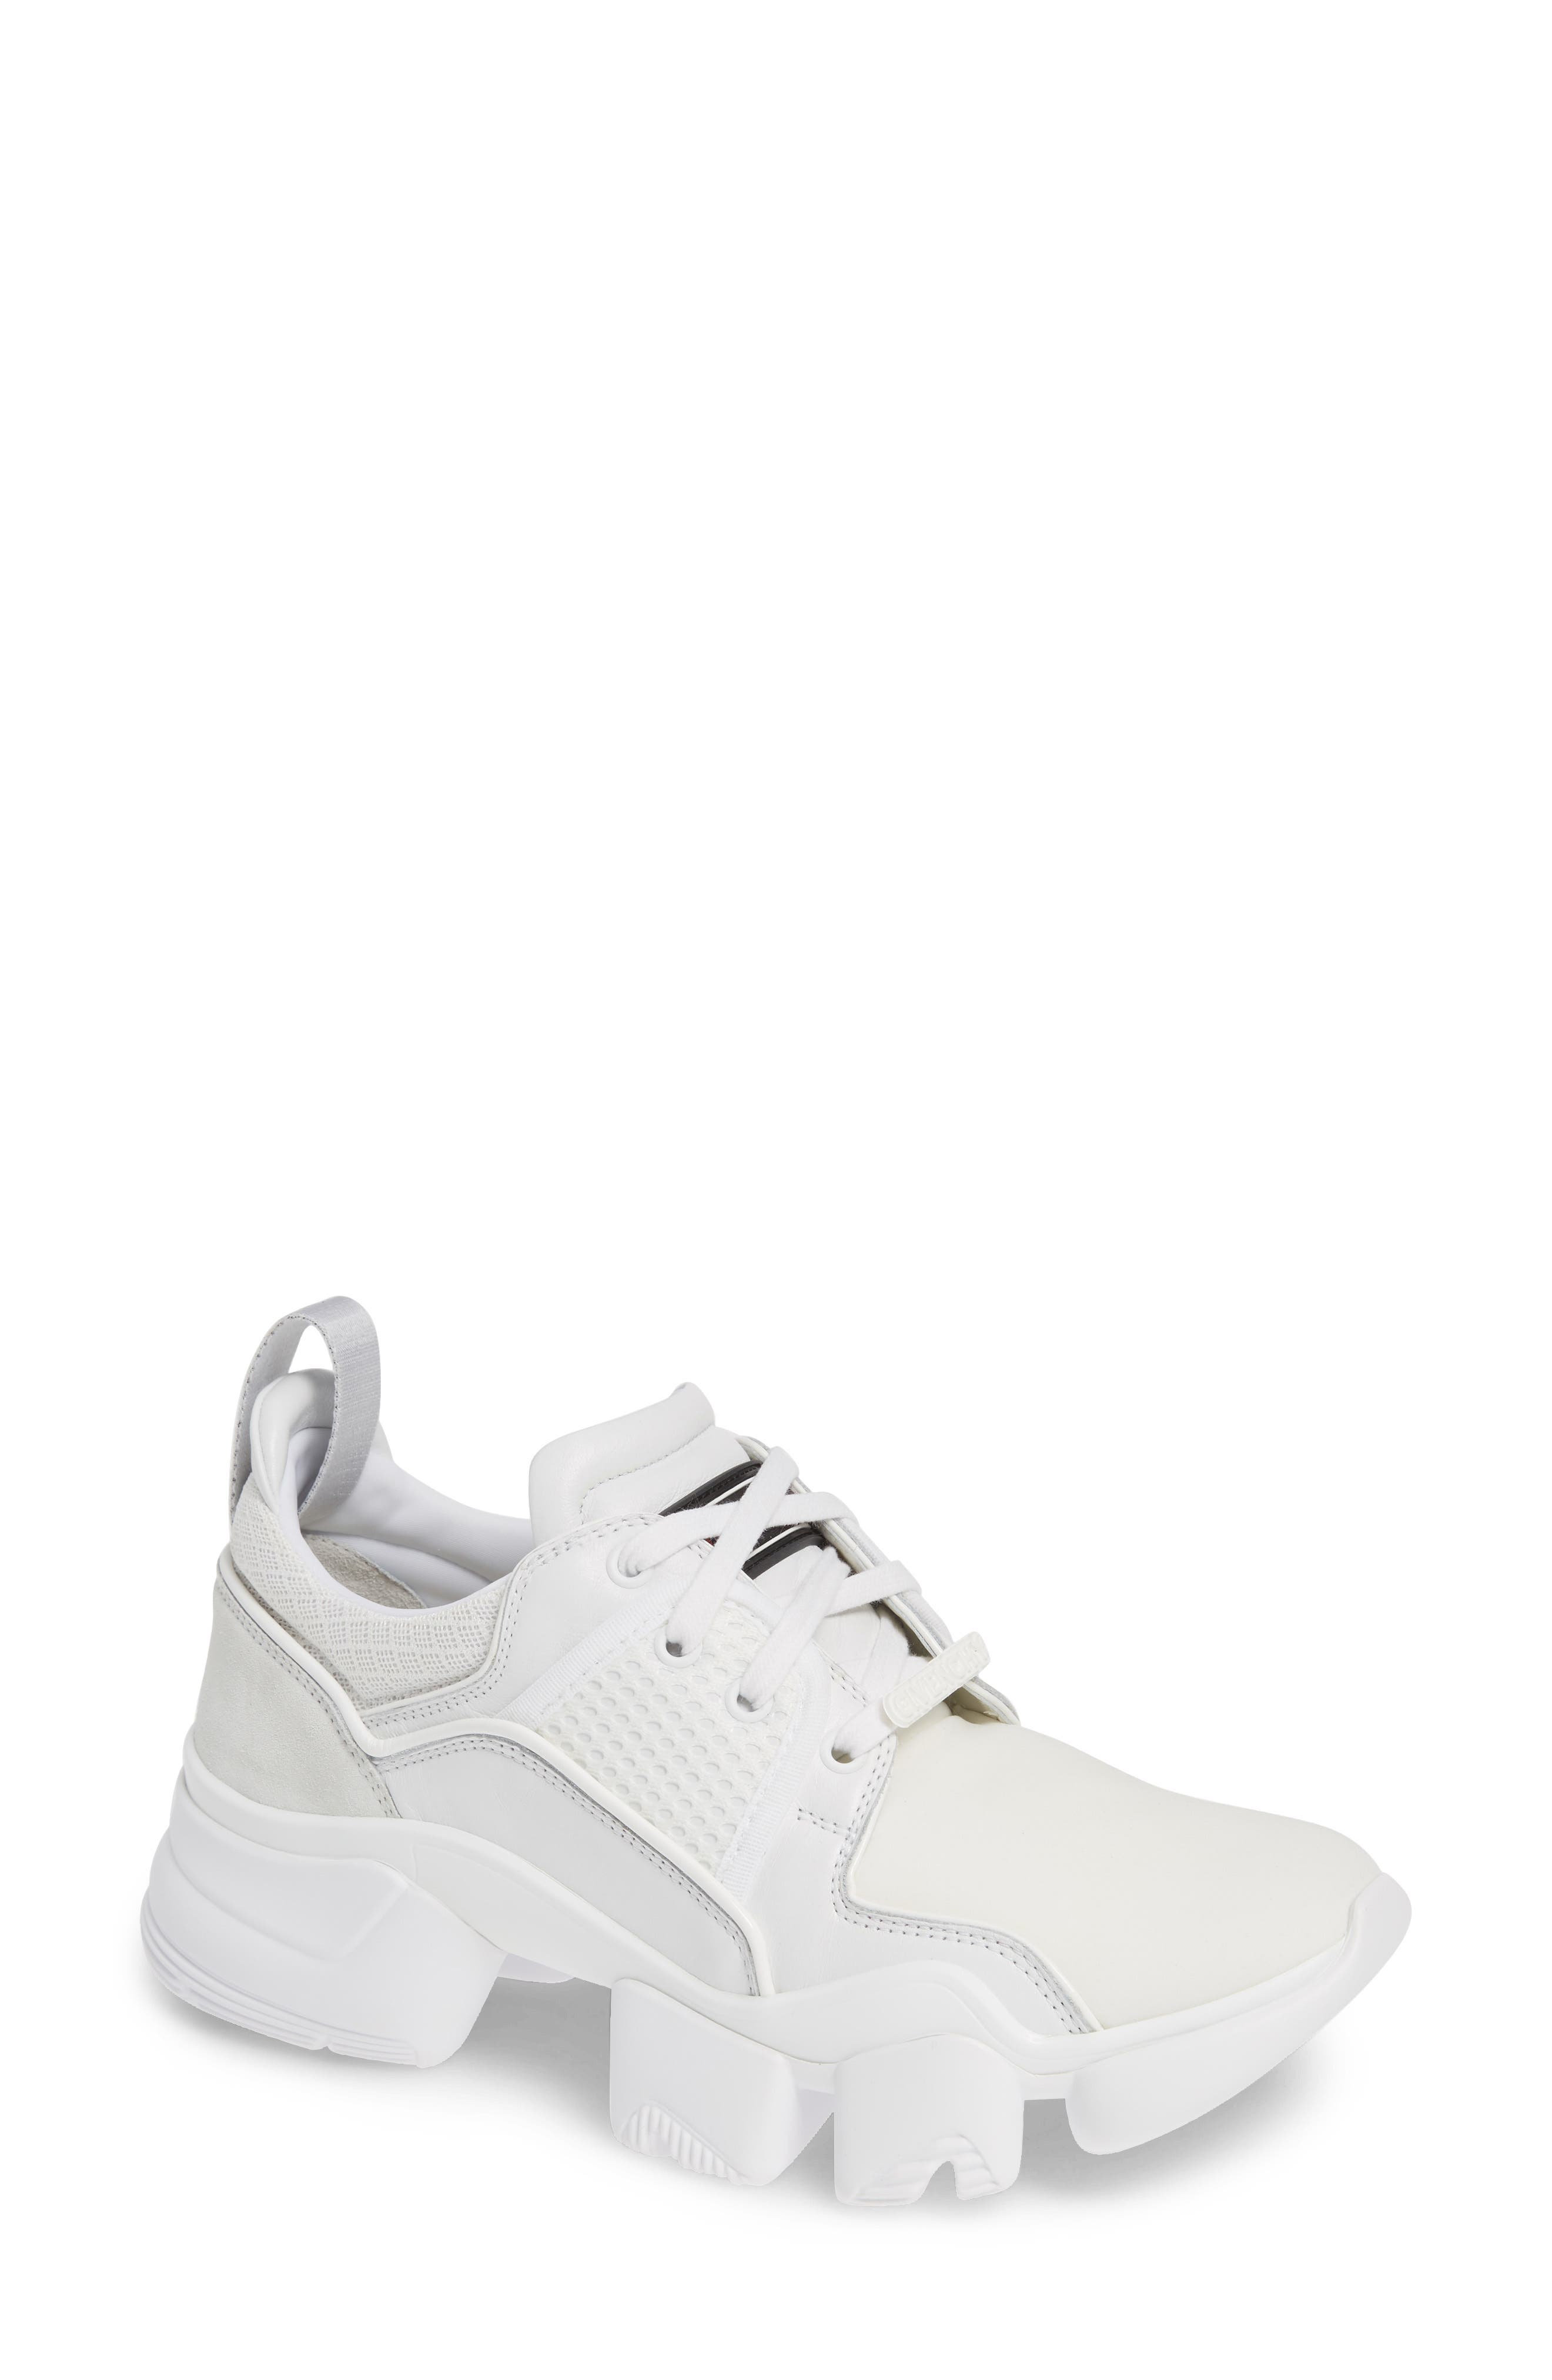 Jaw Sneaker, Main, color, WHITE